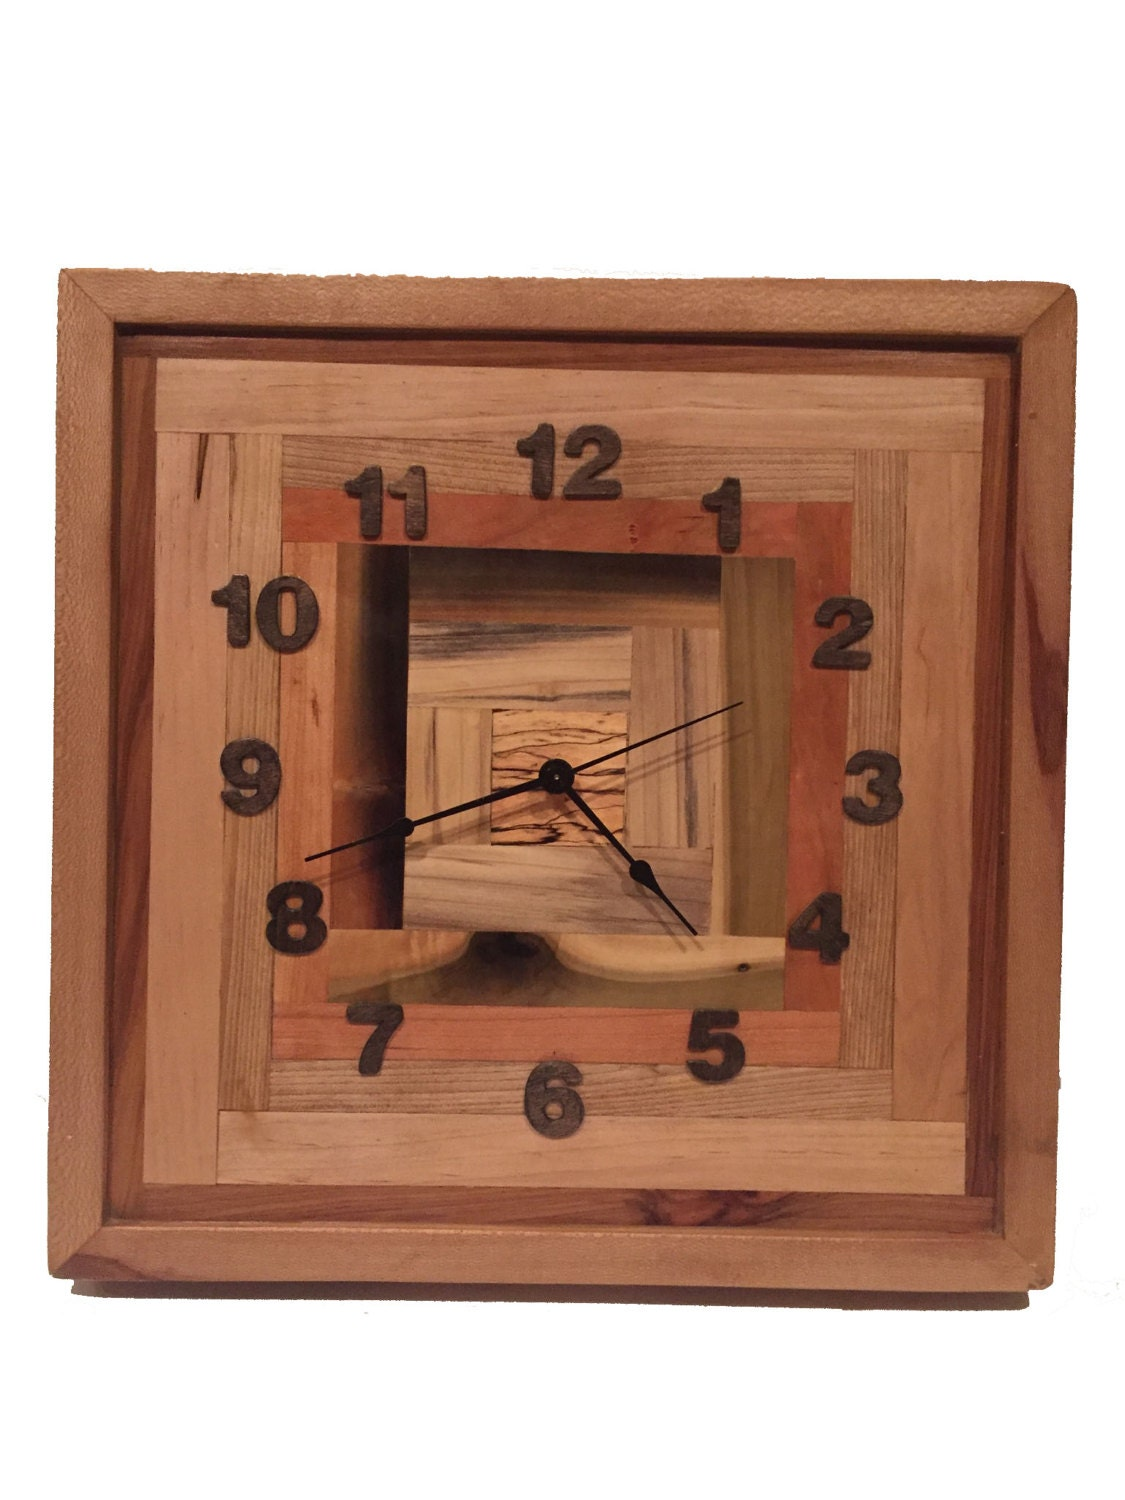 Industrial Wall Decor Reclaimed Wood Rusic Square Pattern Industrial Wall Clock Rustic